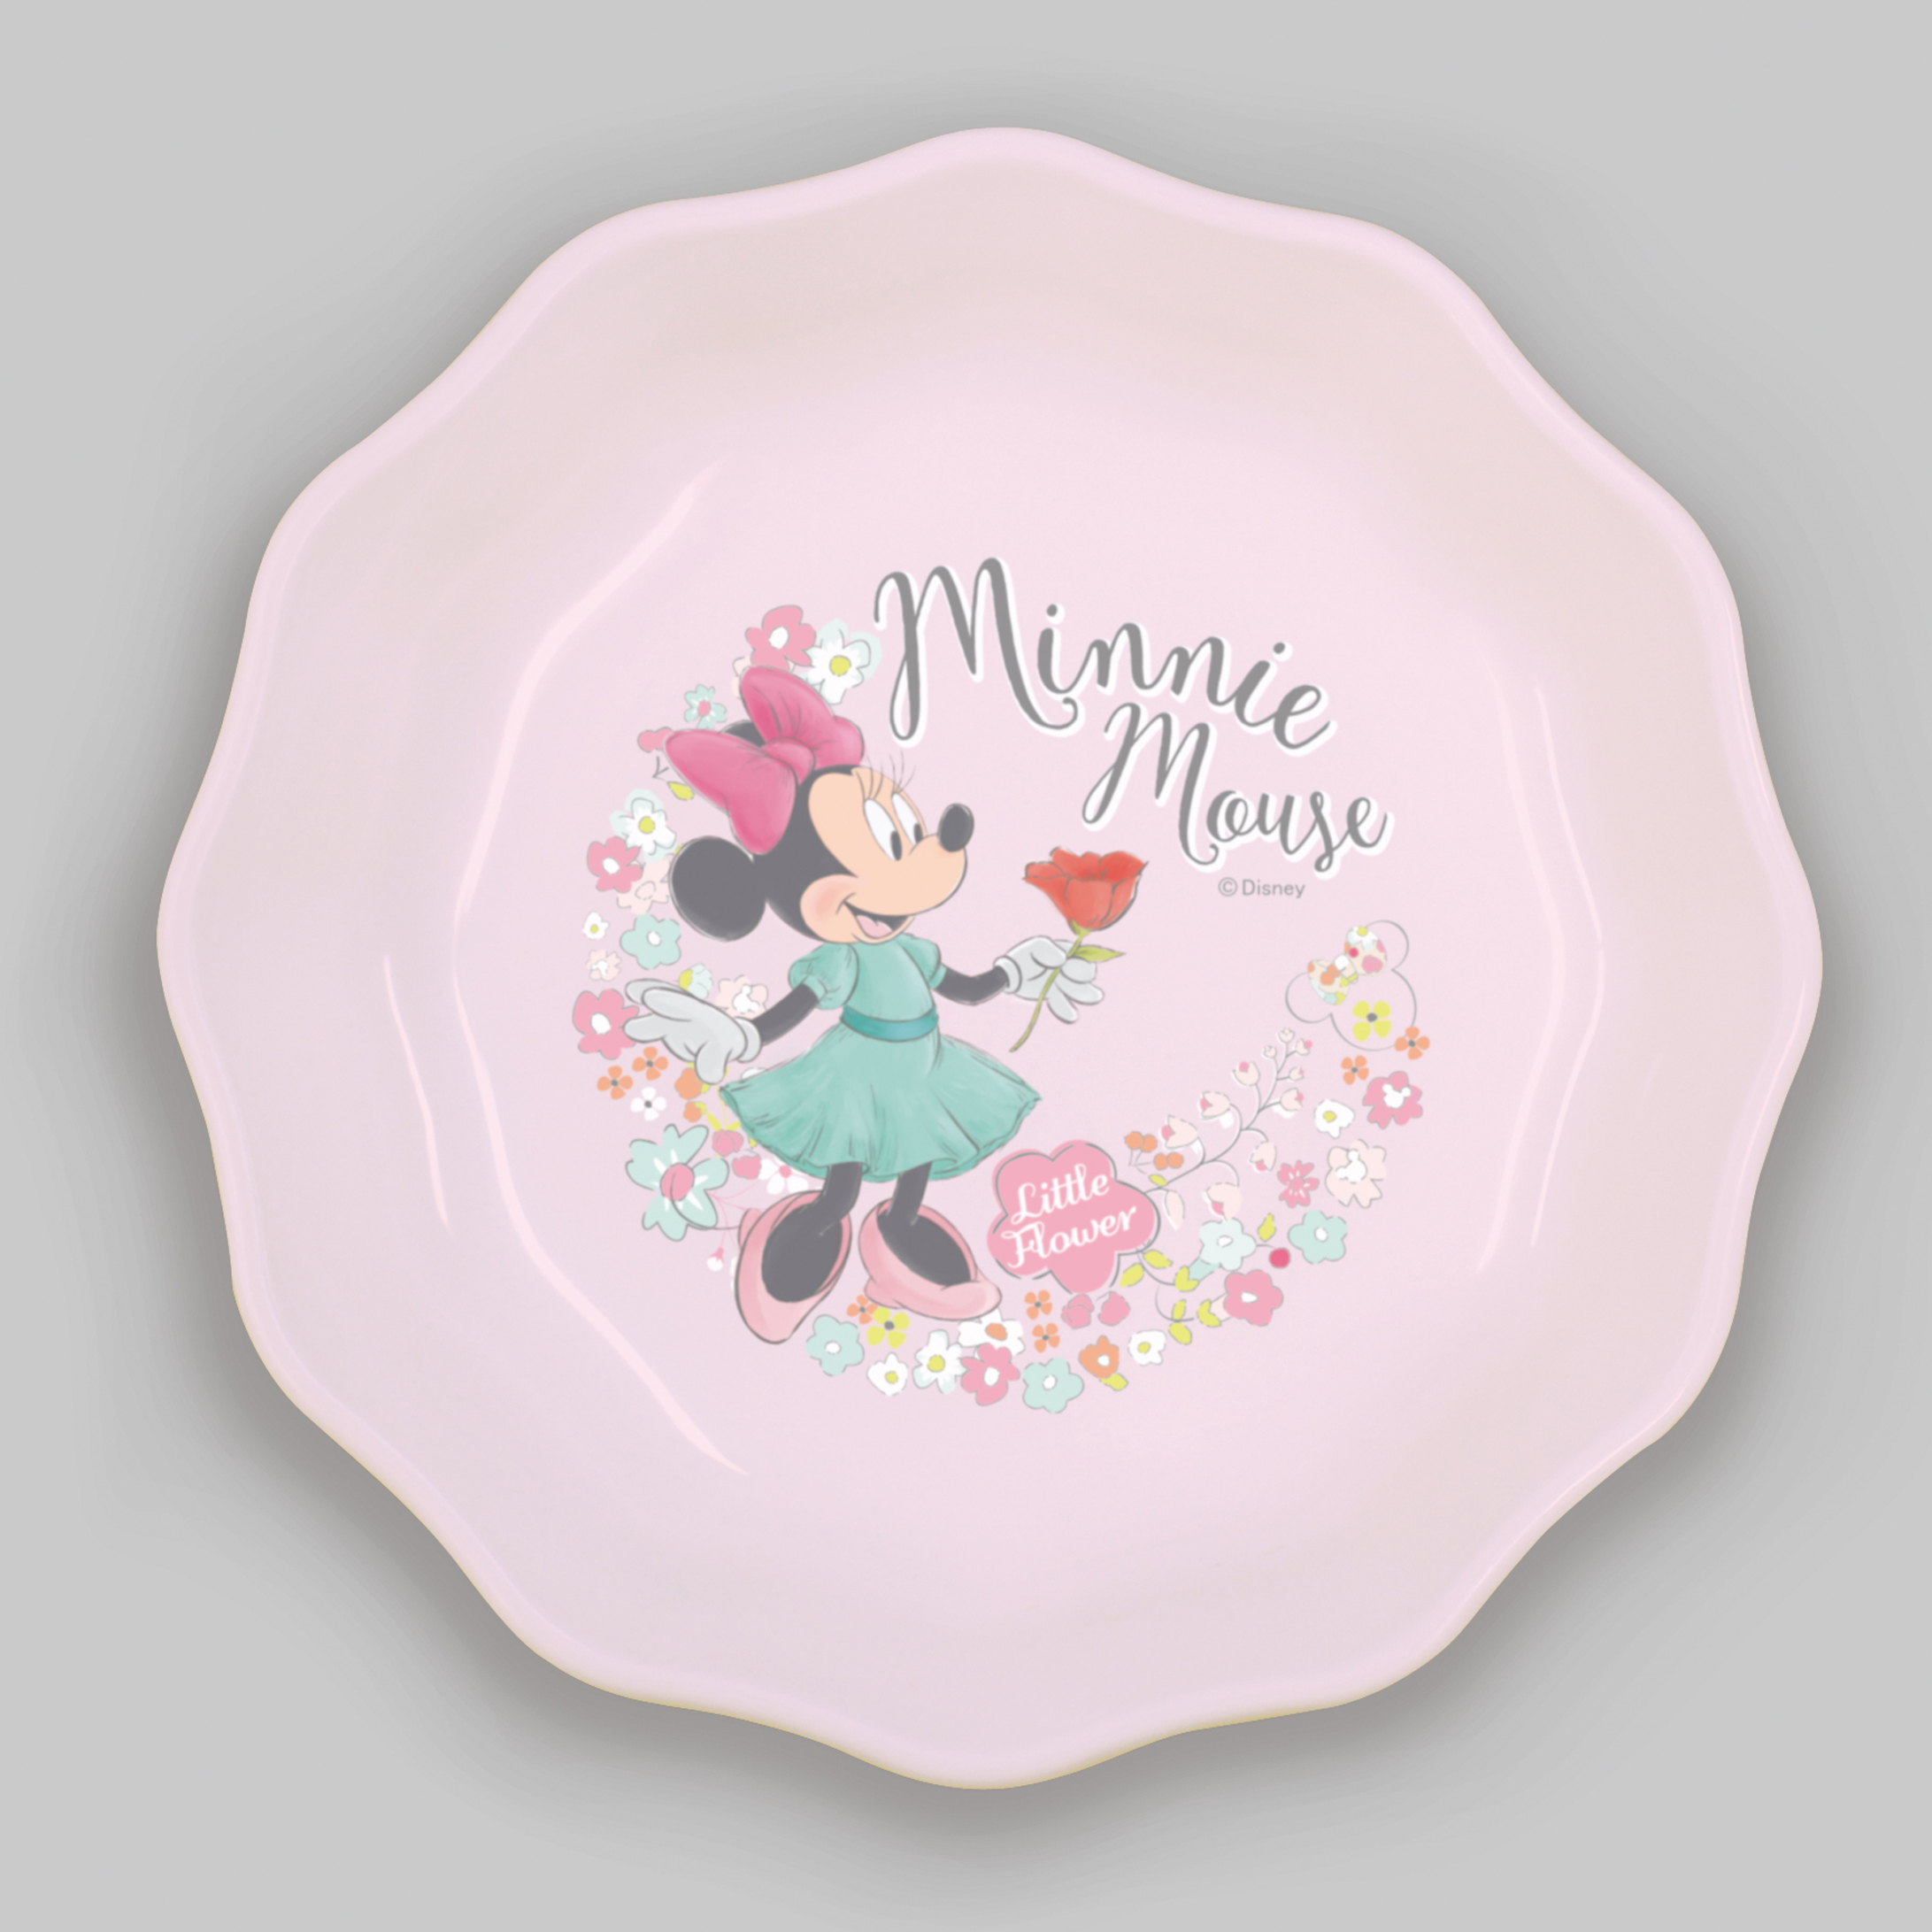 mn-firstdishware-dishware